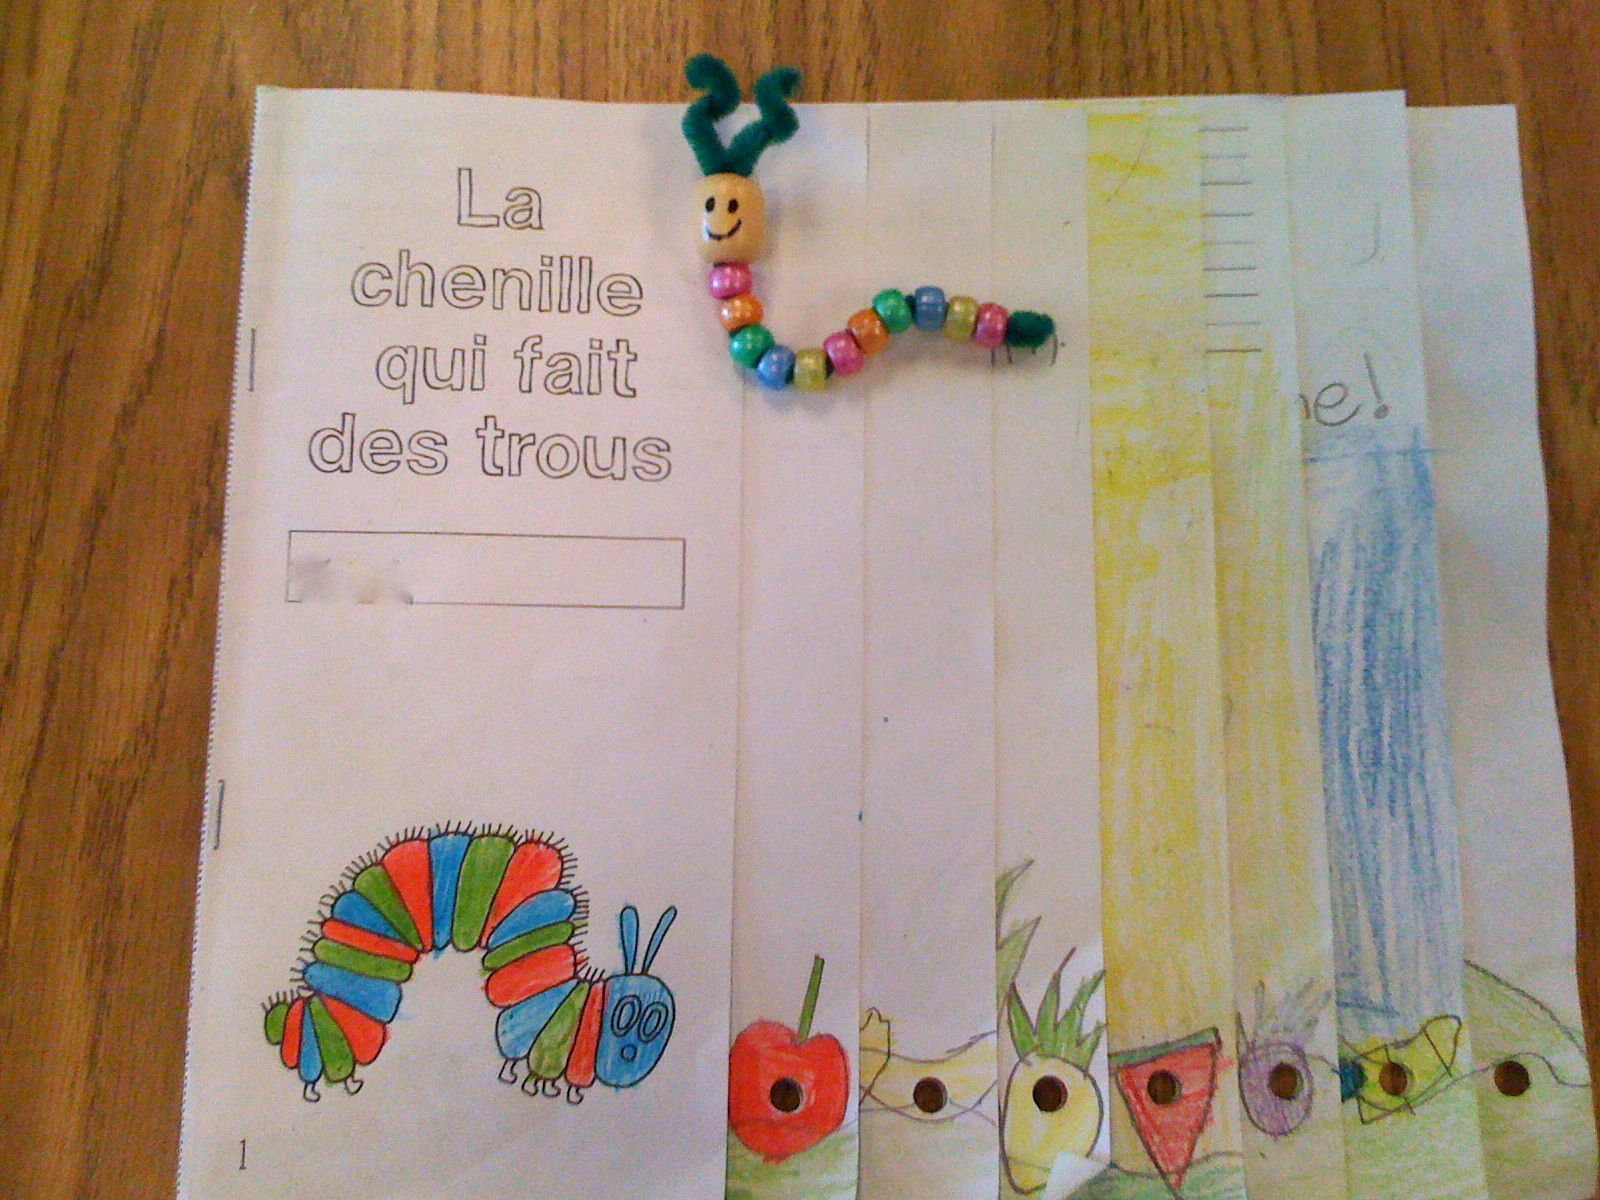 Madame Belle Feuille La Nourriture La Chenille Qui Fait Des Trous Very Hungry Caterpillar